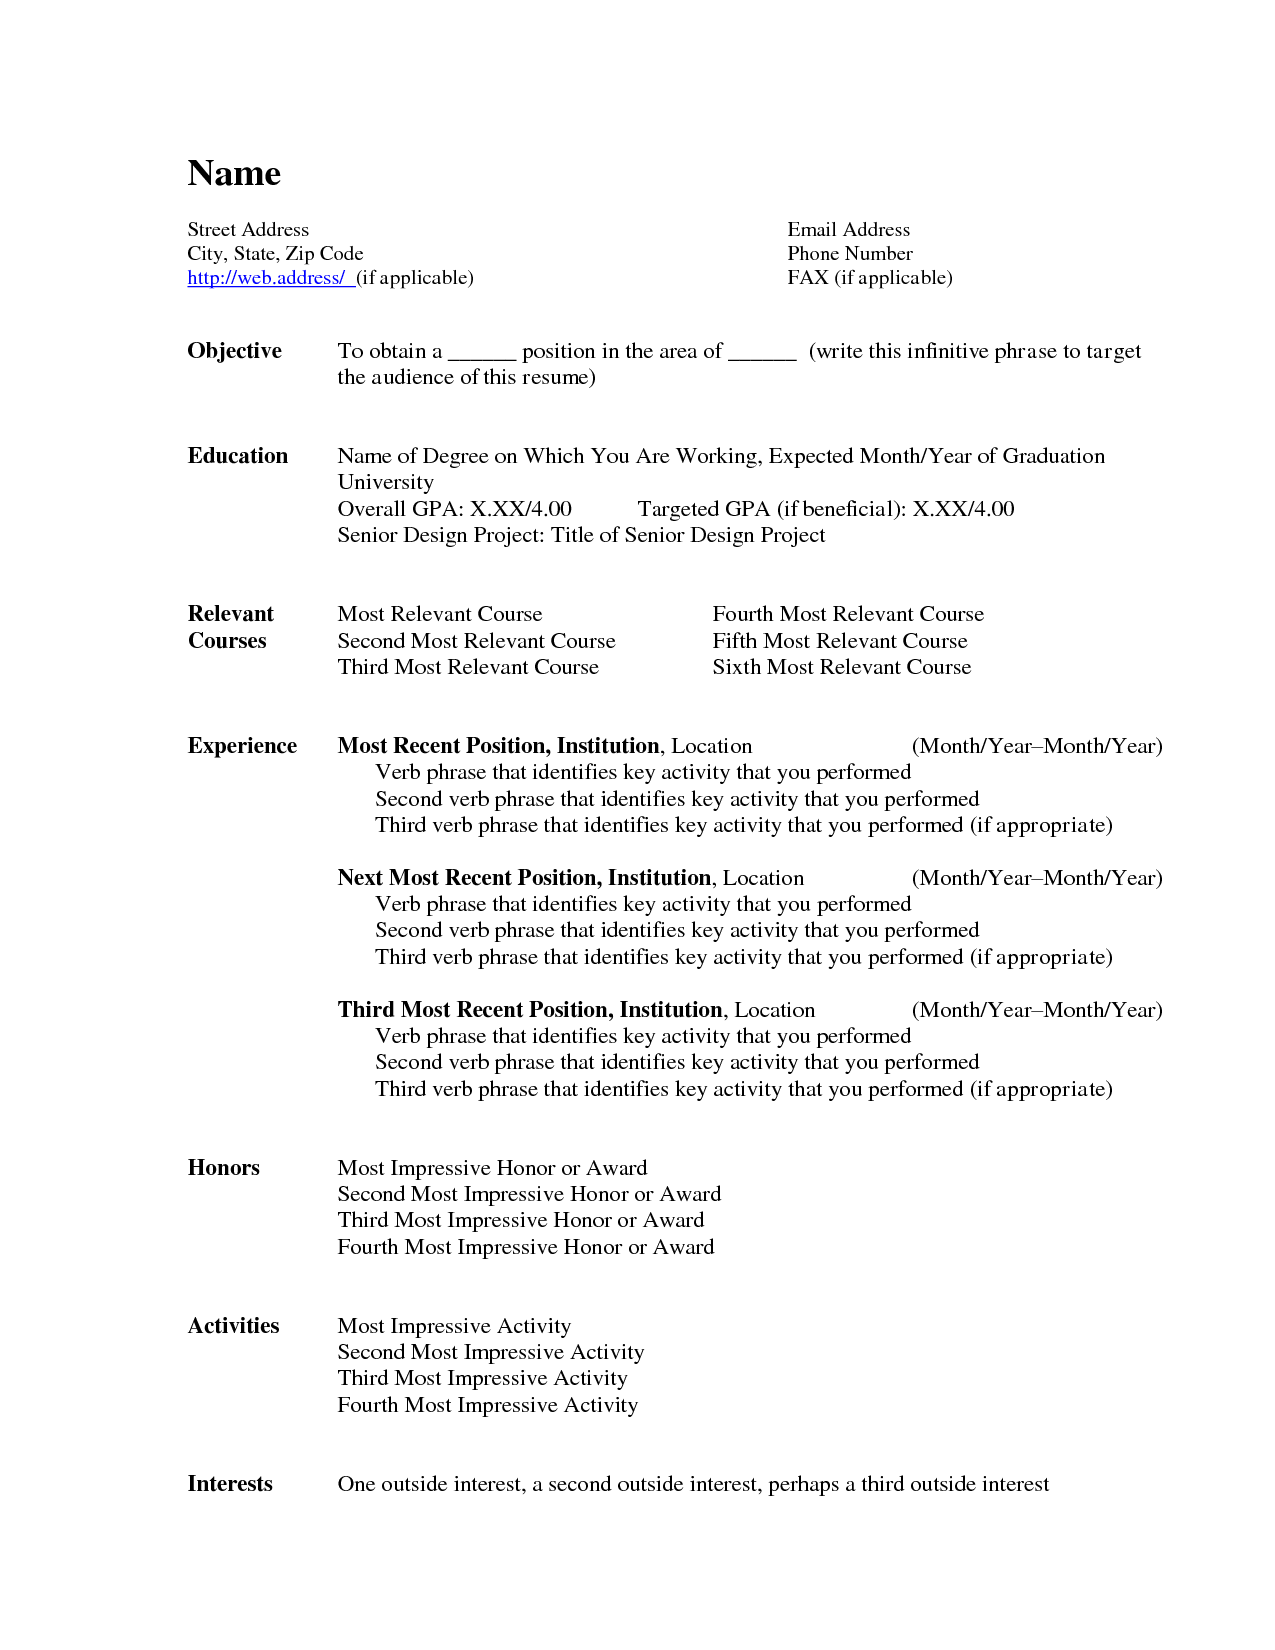 Educator Resume Templates Microsoft Word Educator Resume Templates  Microsoft Word Teacher Resume Template Download Teaching Resume